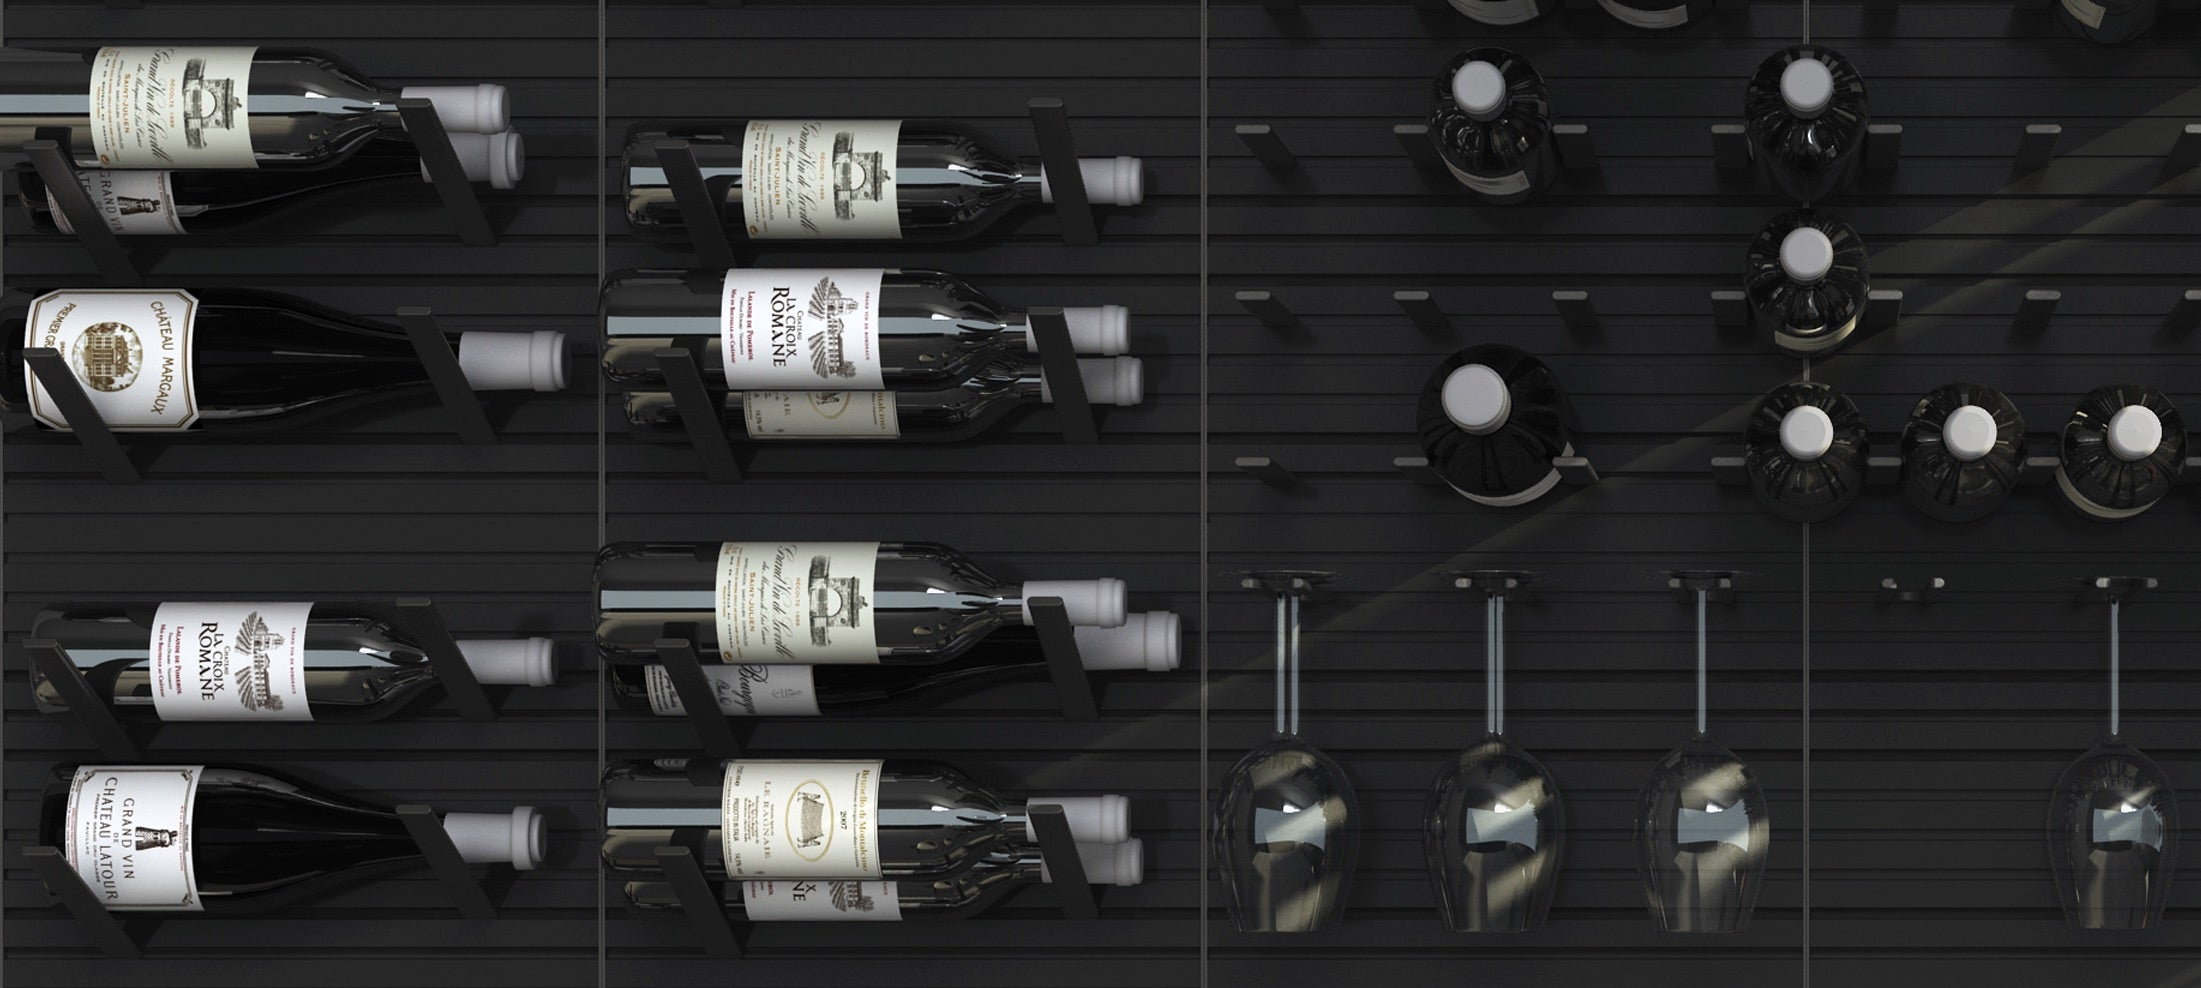 label-out metal peg wine racks